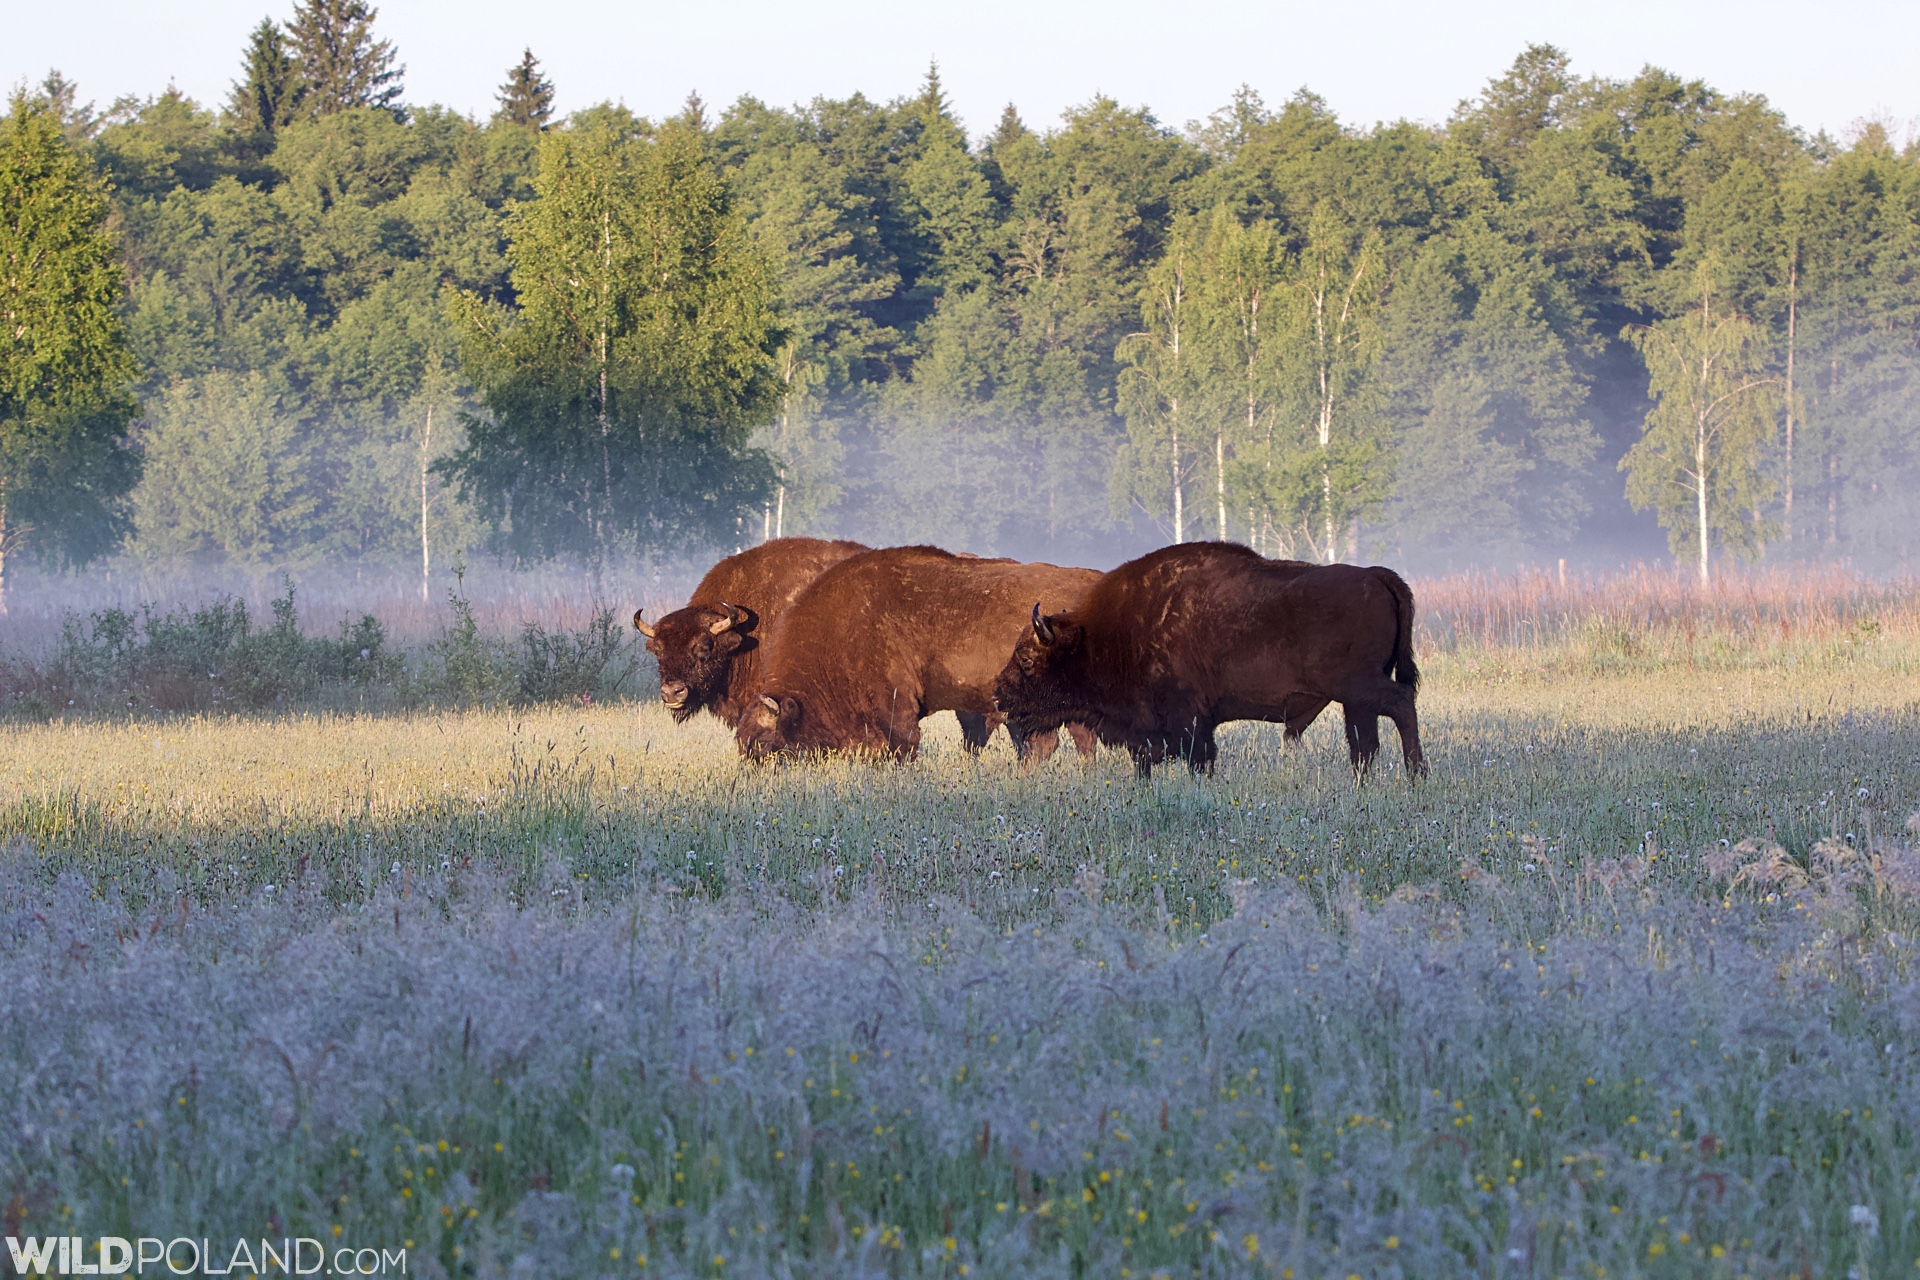 Bison in the Białowieża Forest, three bulls on a meadow at dawn.